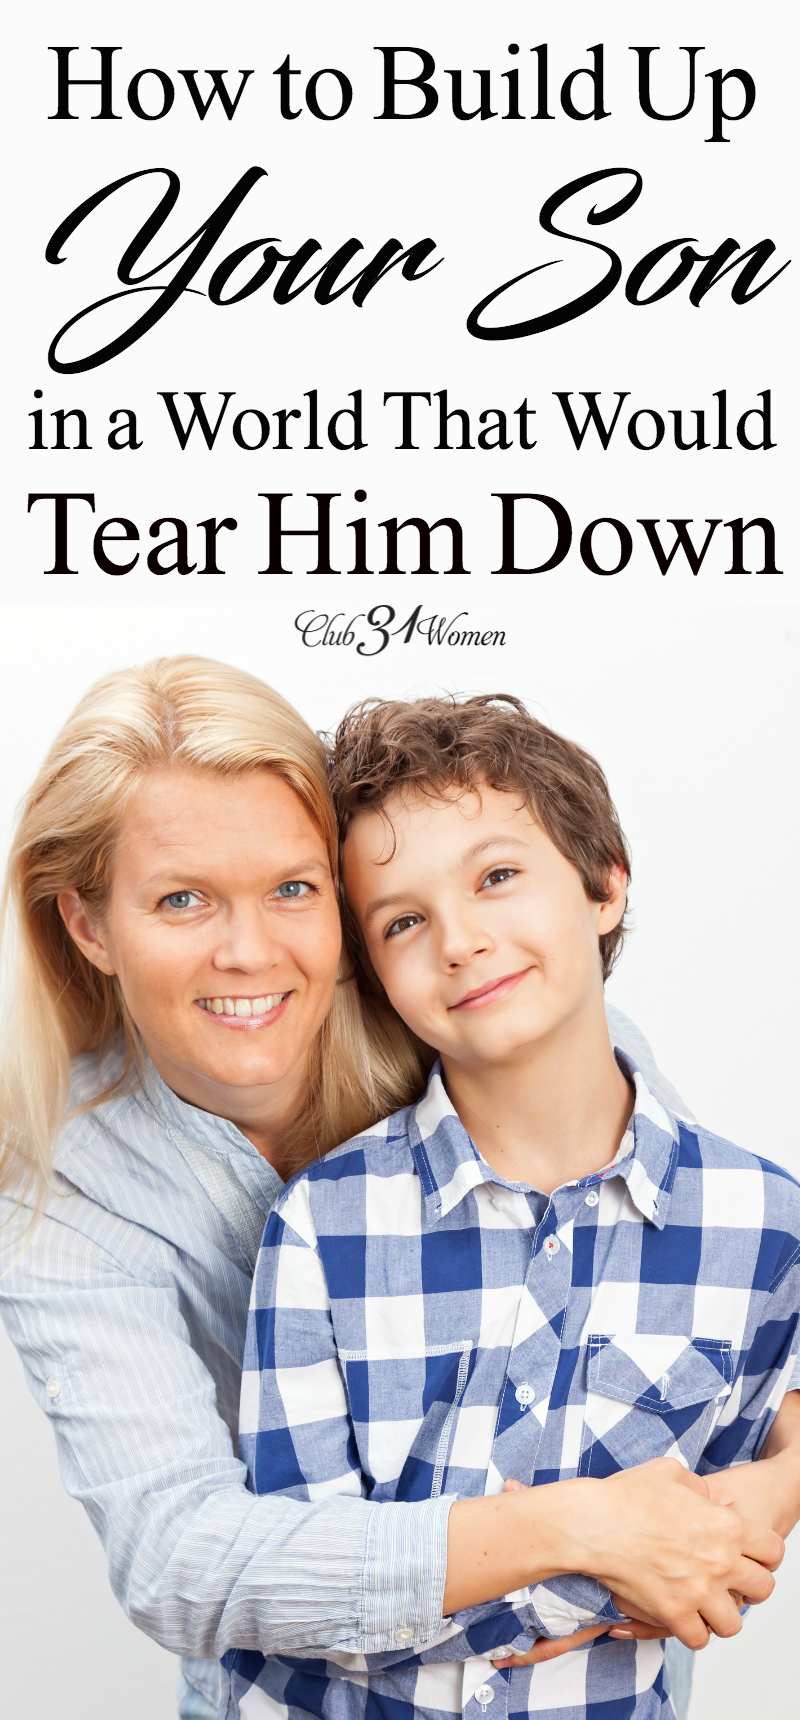 Do you know how much your son needs to hear from you? We live in a world that would tear him down, but he needs you to build him up and speak truth into his life! via @Club31Women